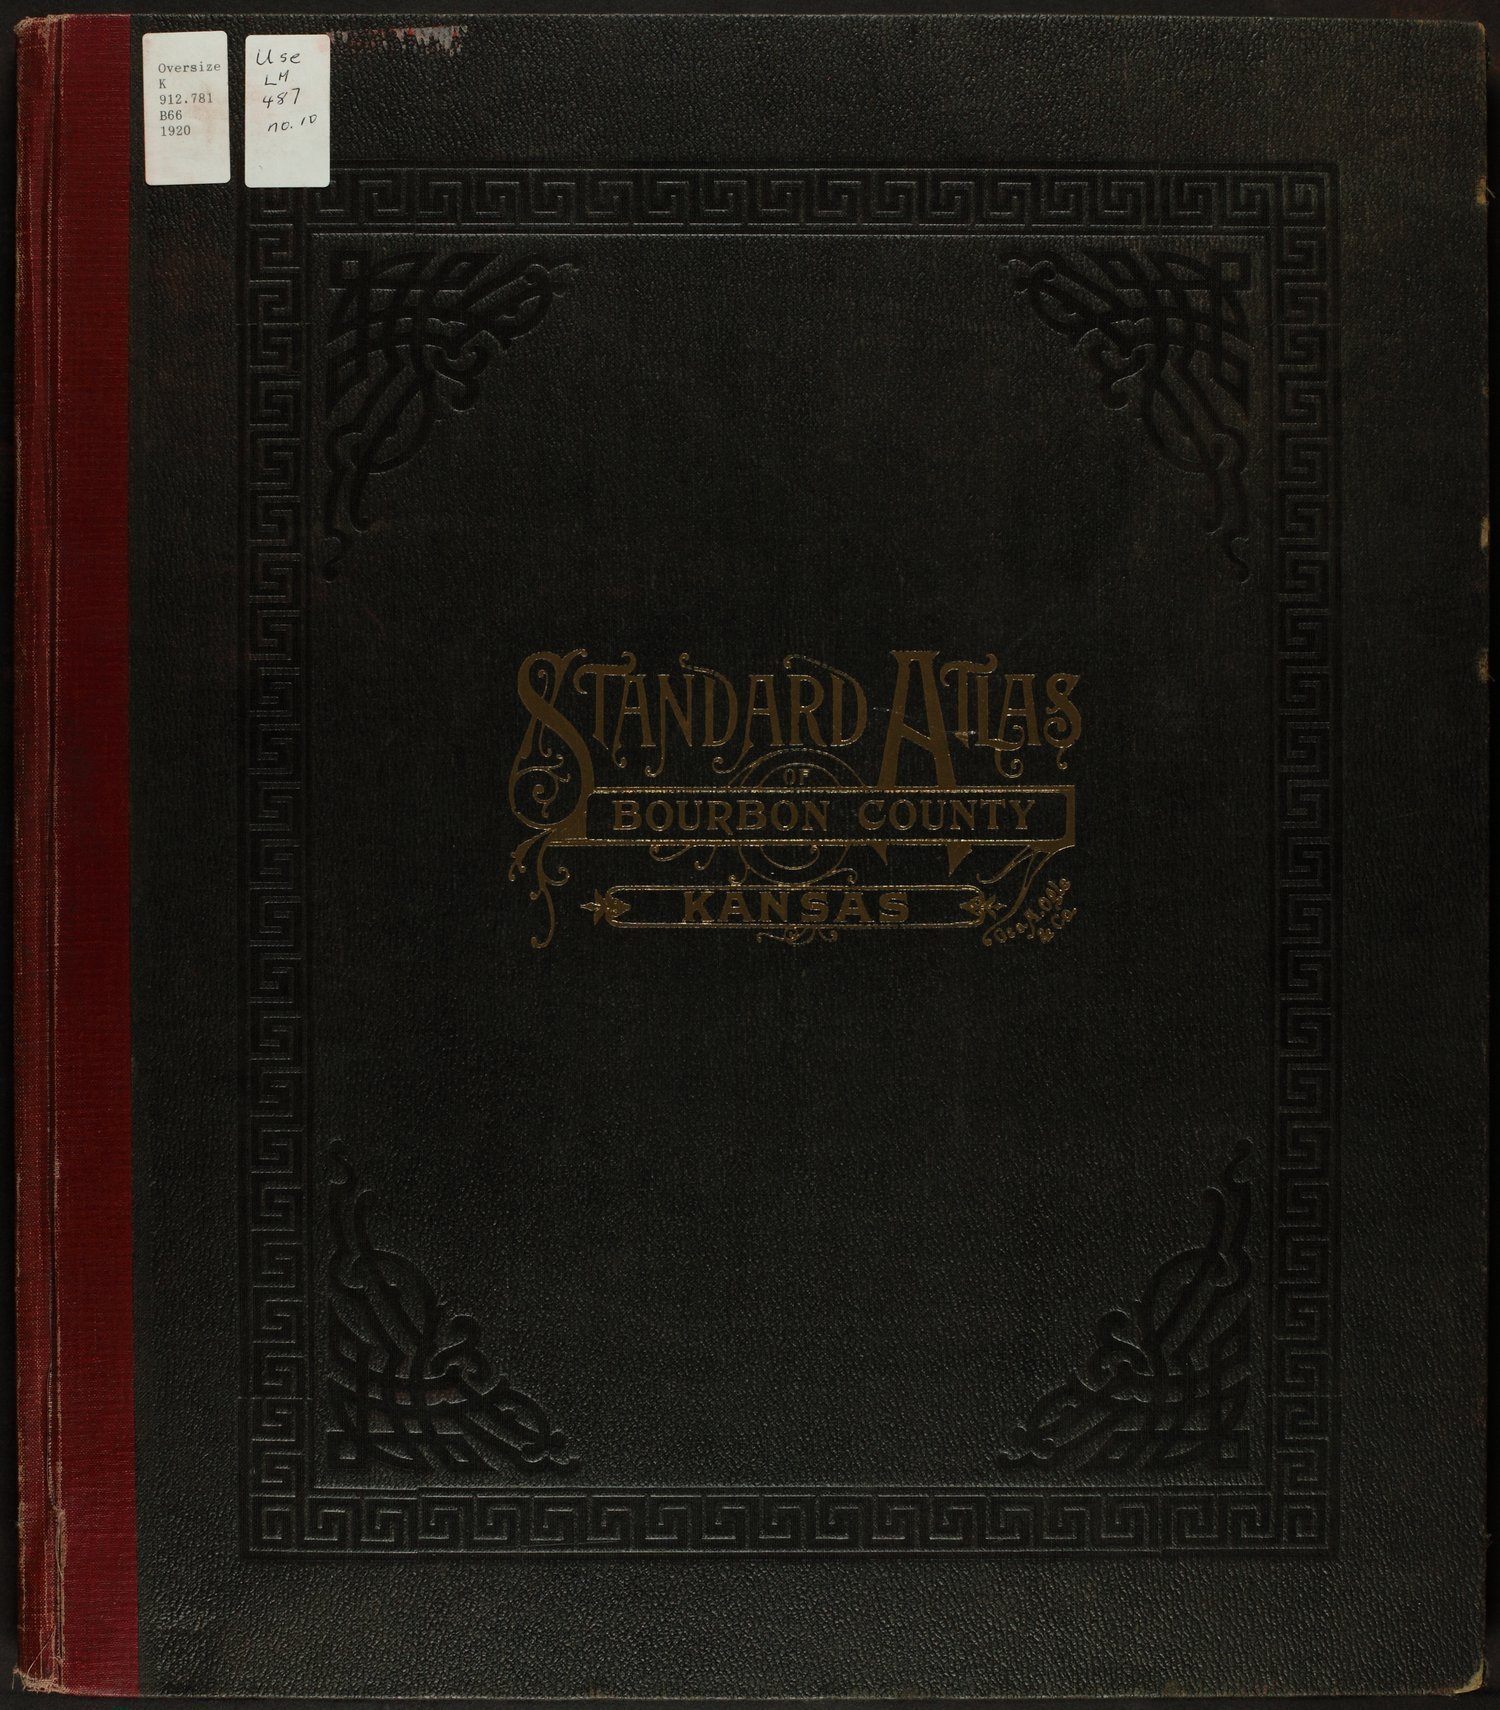 Standard atlas of Bourbon County, Kansas - Front Cover